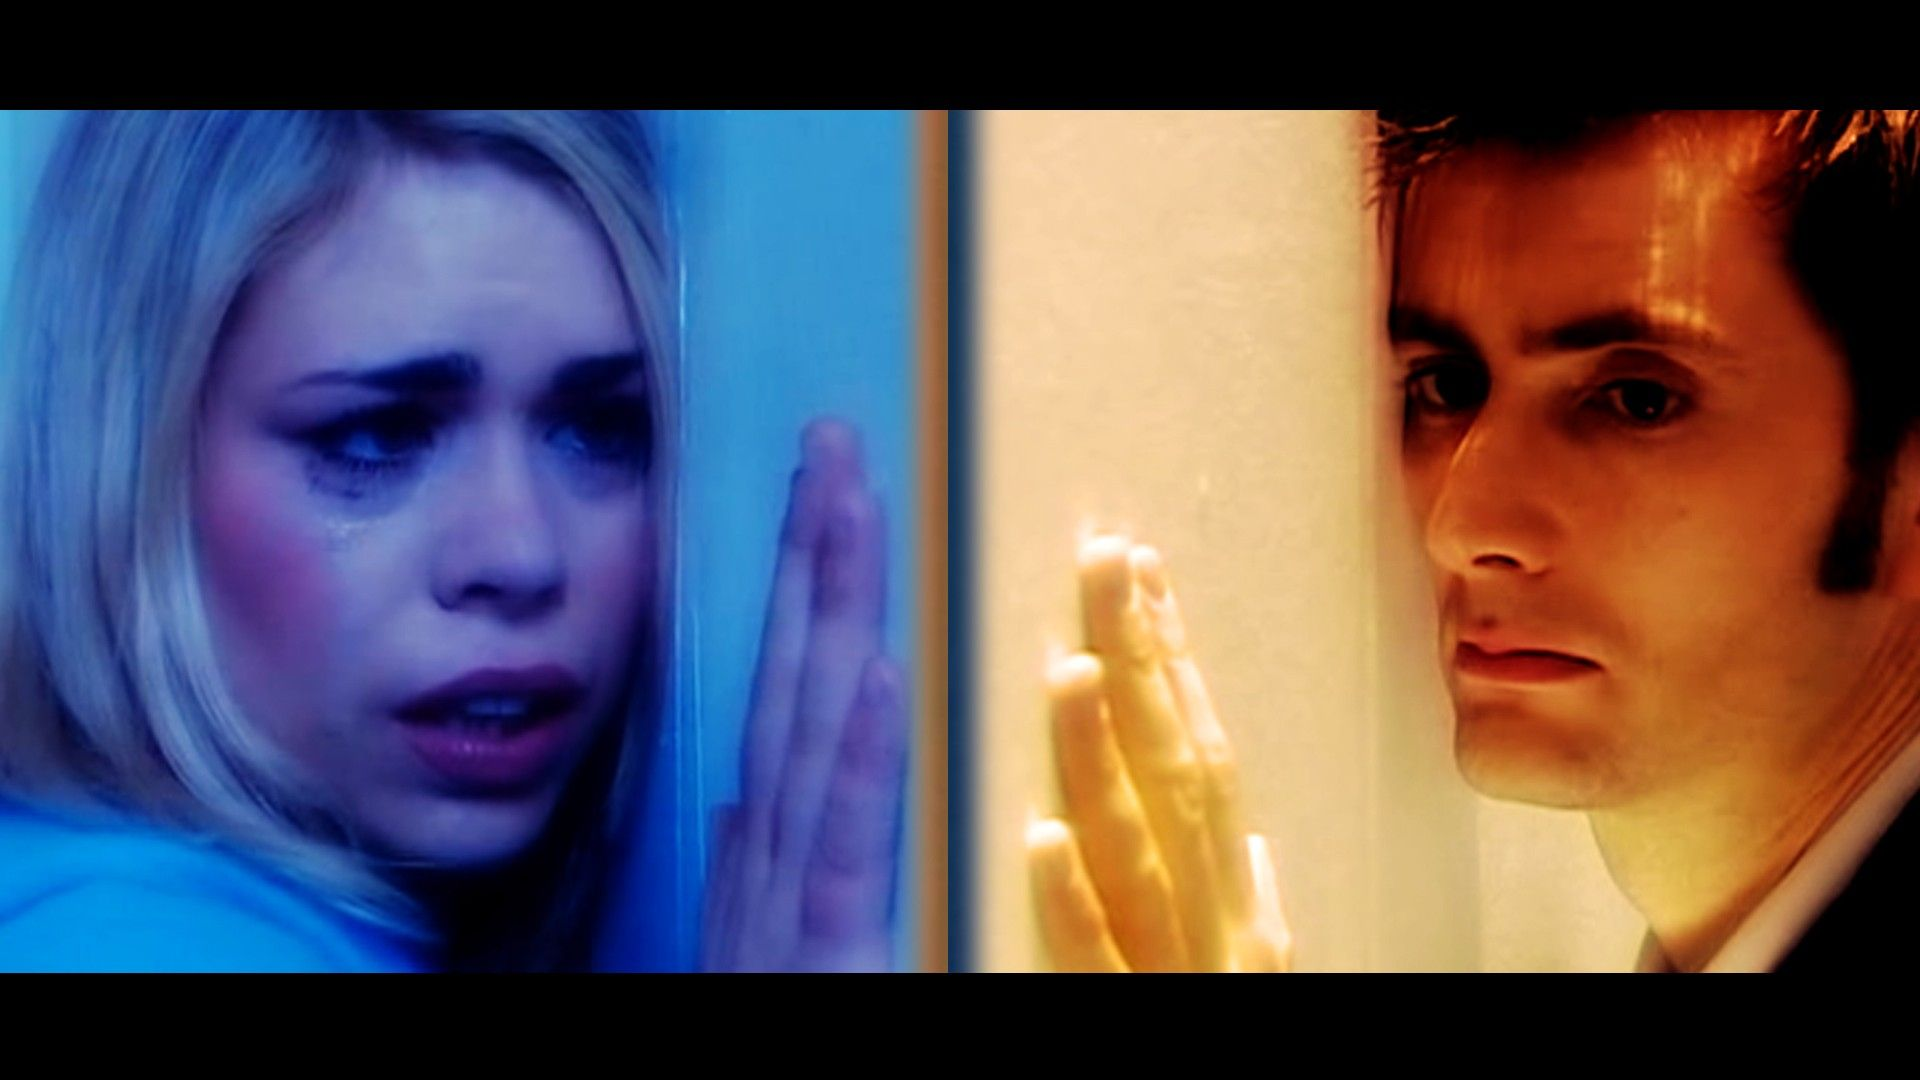 Rose Tyler David Tennant Billie Piper Doctor Who Tenth ...